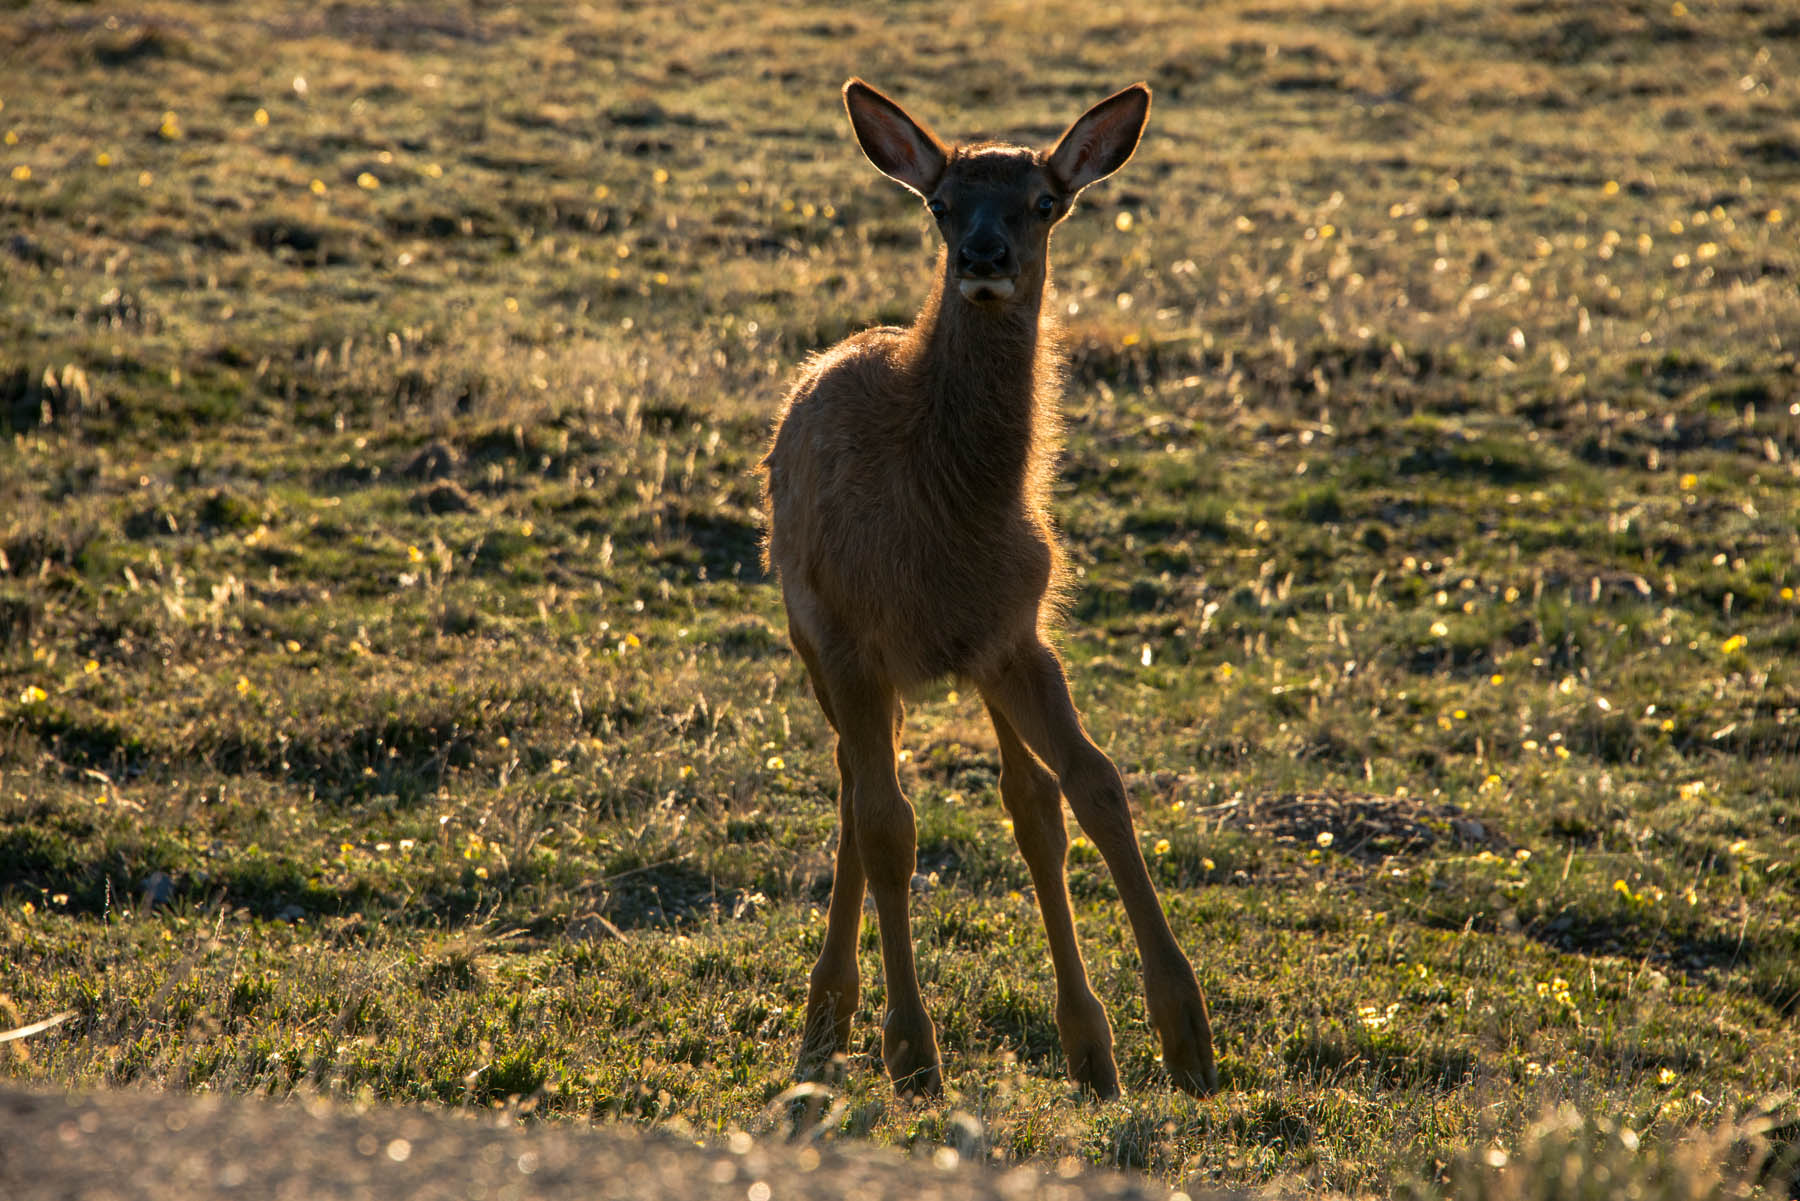 An elk calf stands on wobbly legs in the alpine tundra of Rocky Mountain National Park, Colorado.